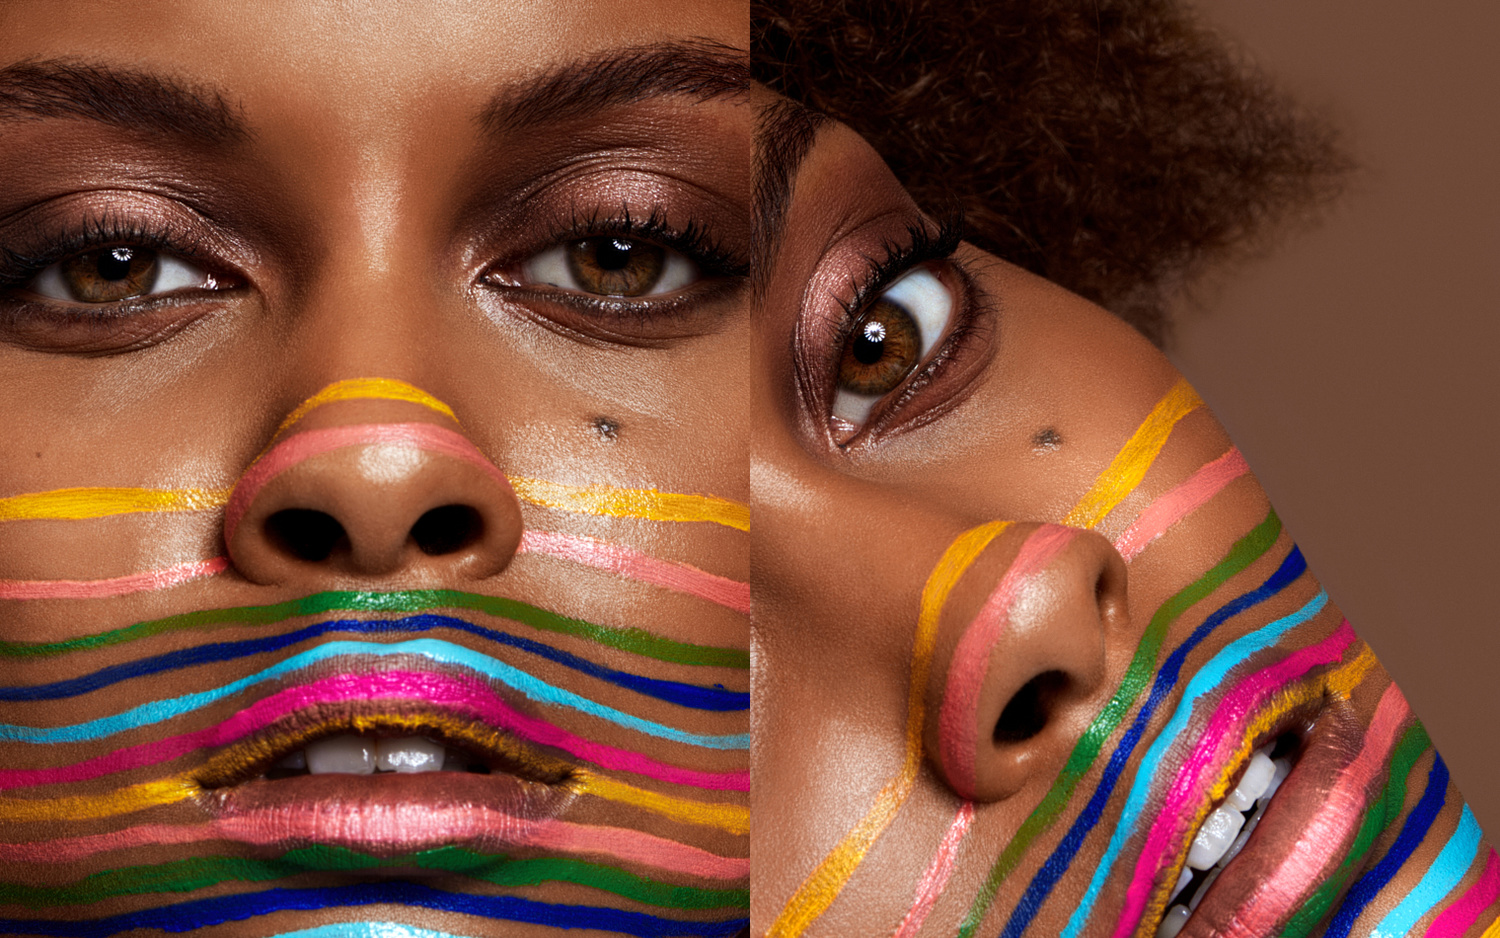 Beauty photo of model with color lines drawn on face